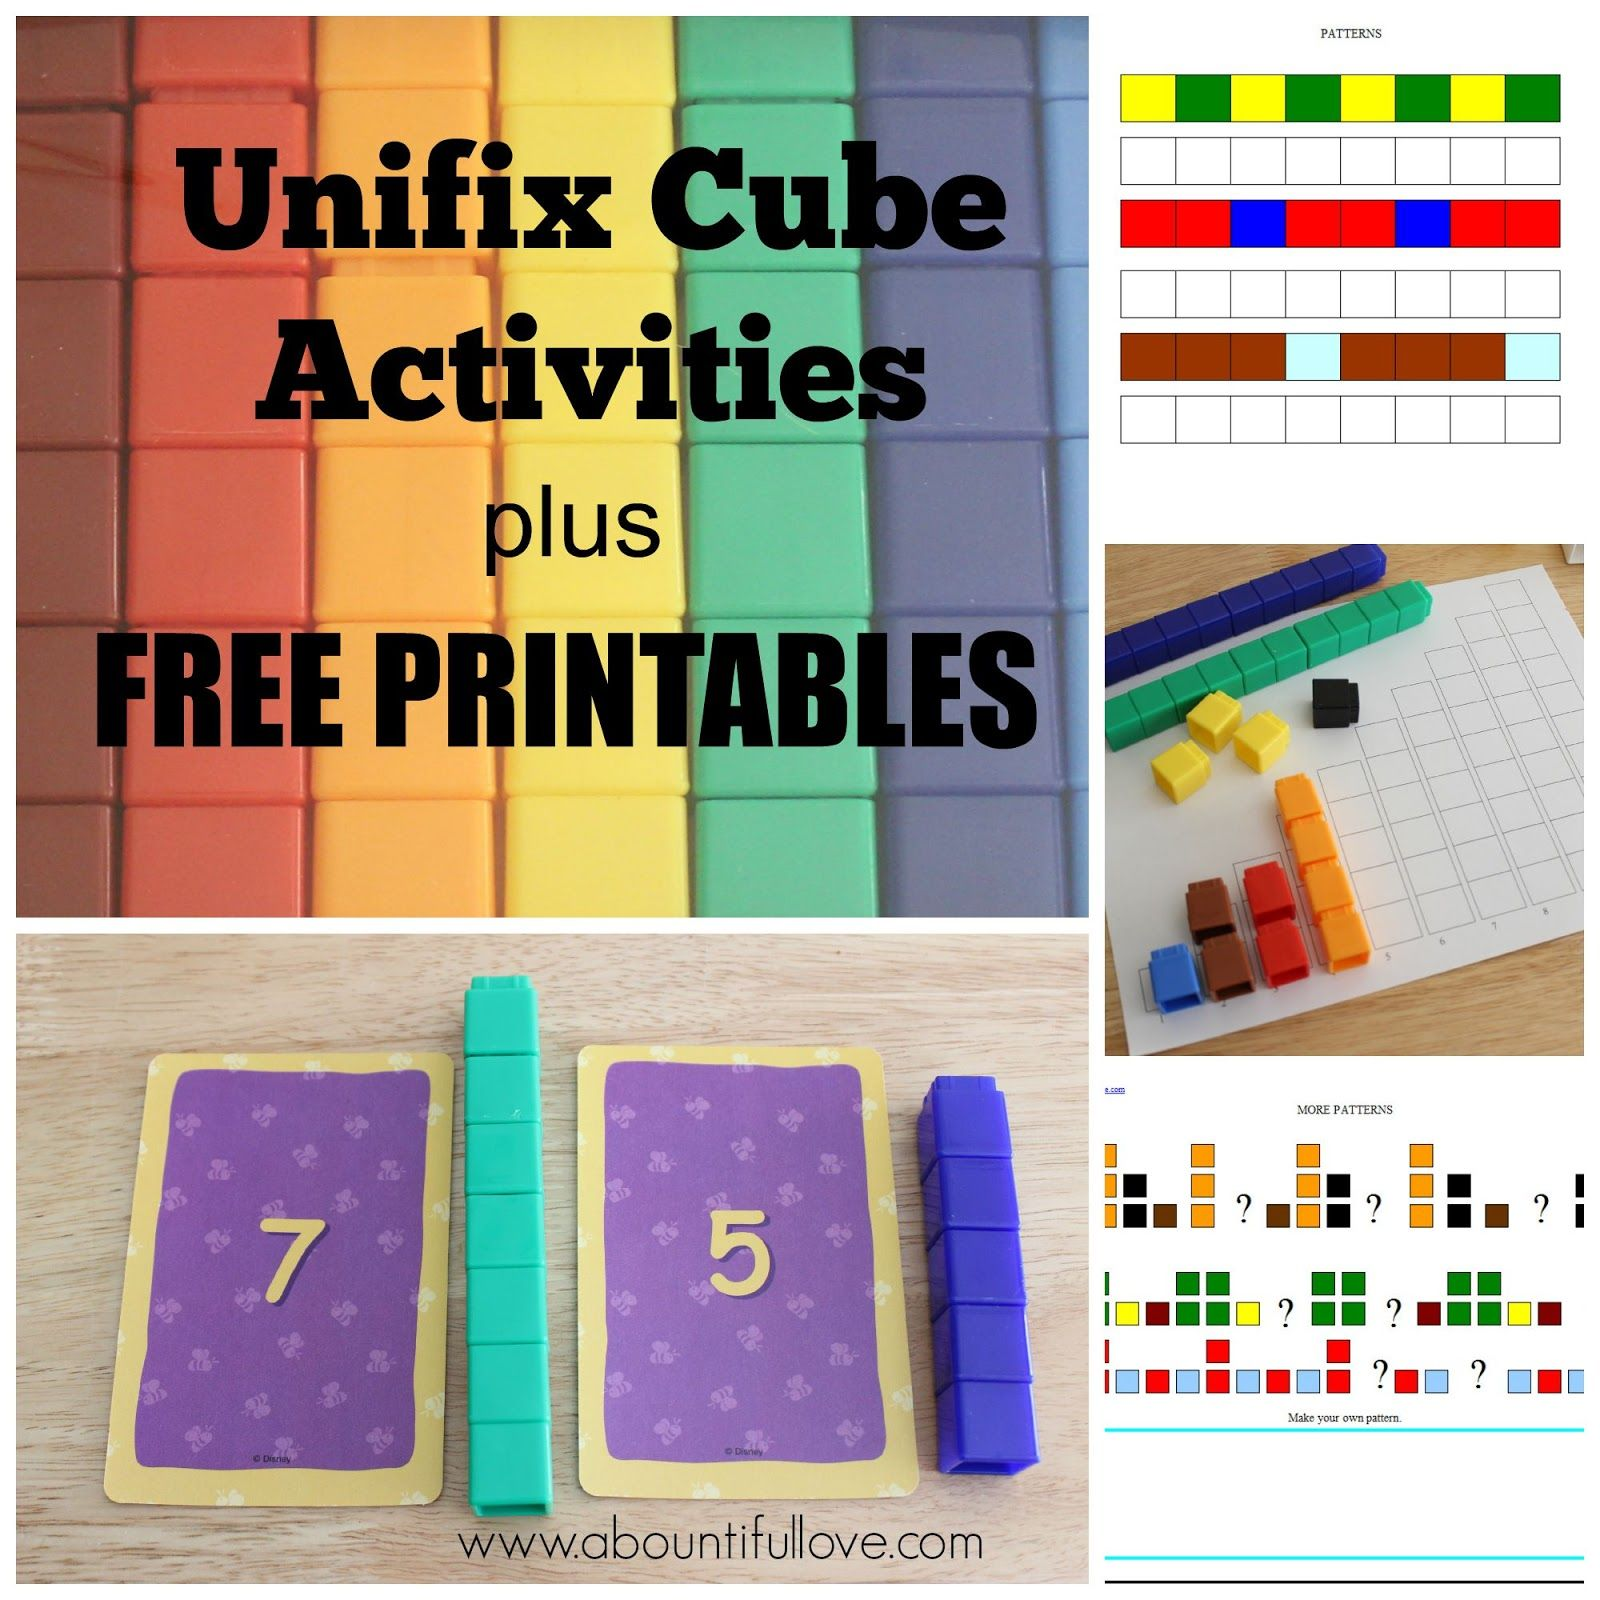 Unifix Cubes Activities Plus Free Printables Unifix Cube